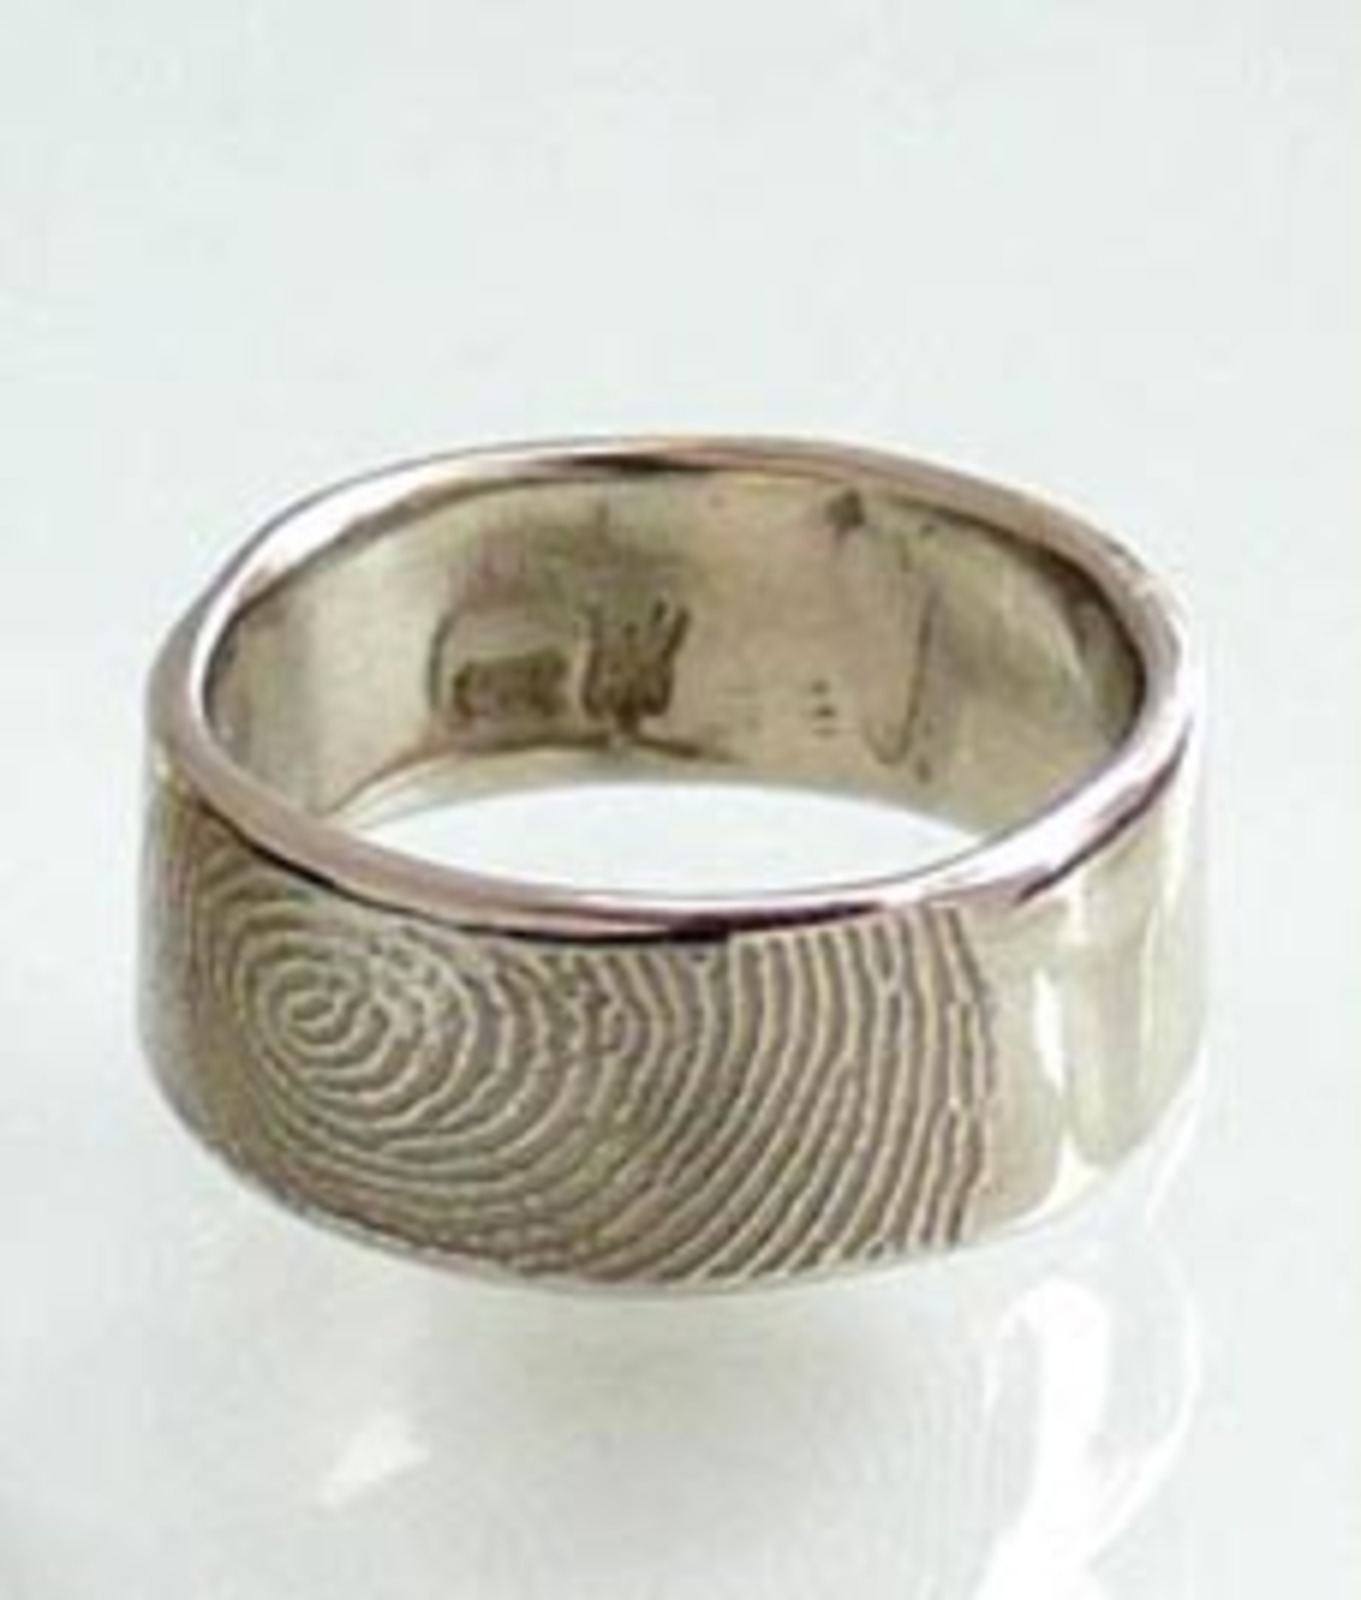 post handpicked wedding fingerprint ideas bands venuelust ring custom mens rings unique image large